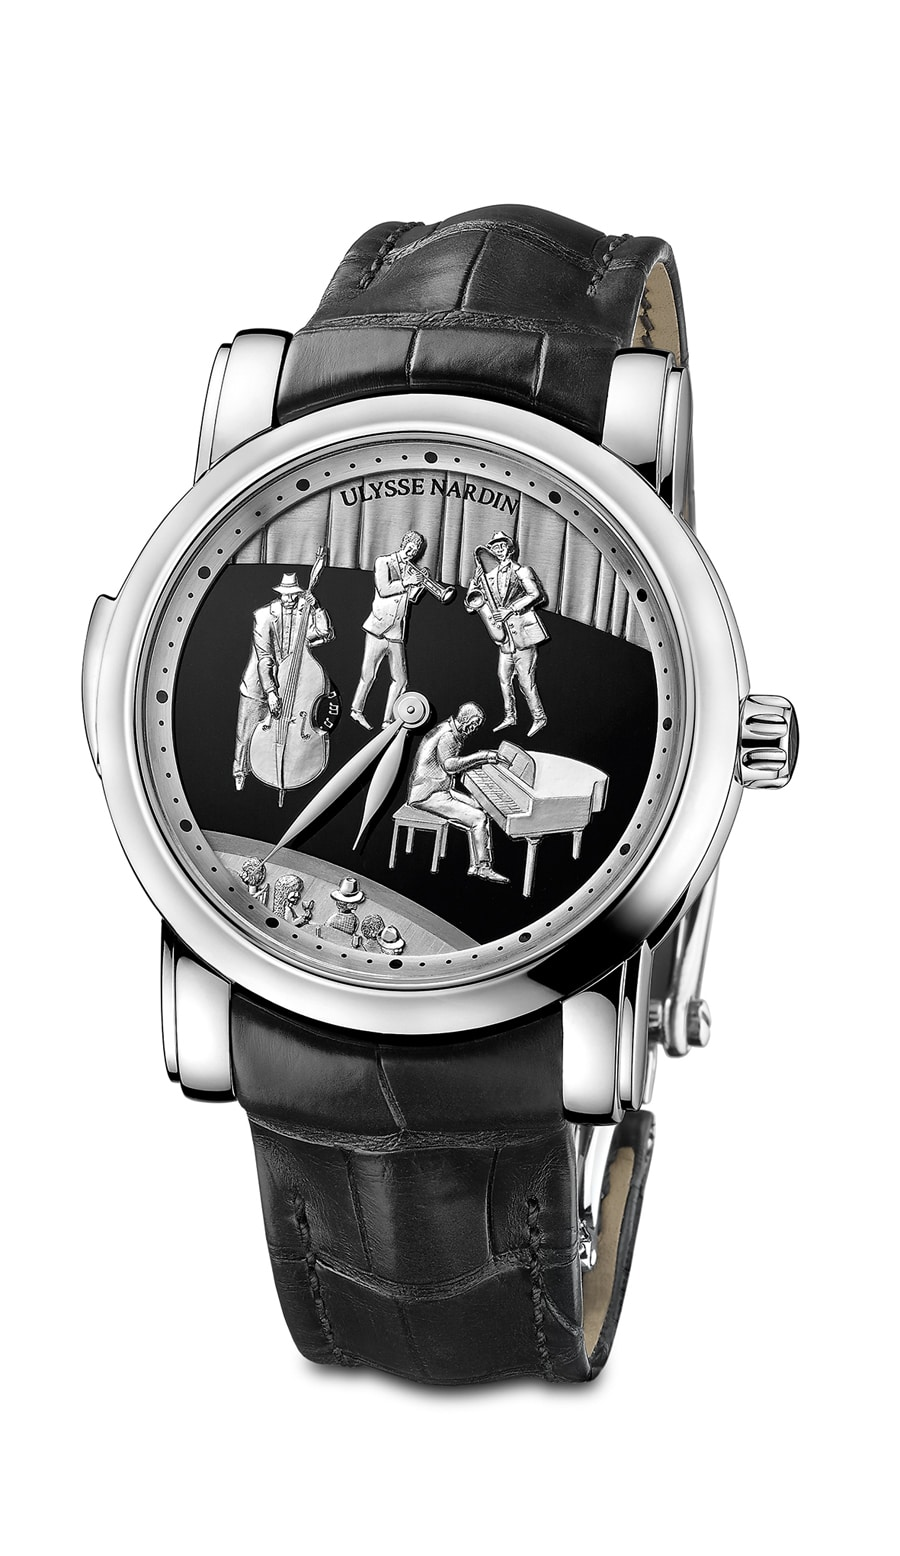 Ulysse Nardin: Jazz Minute Repeater